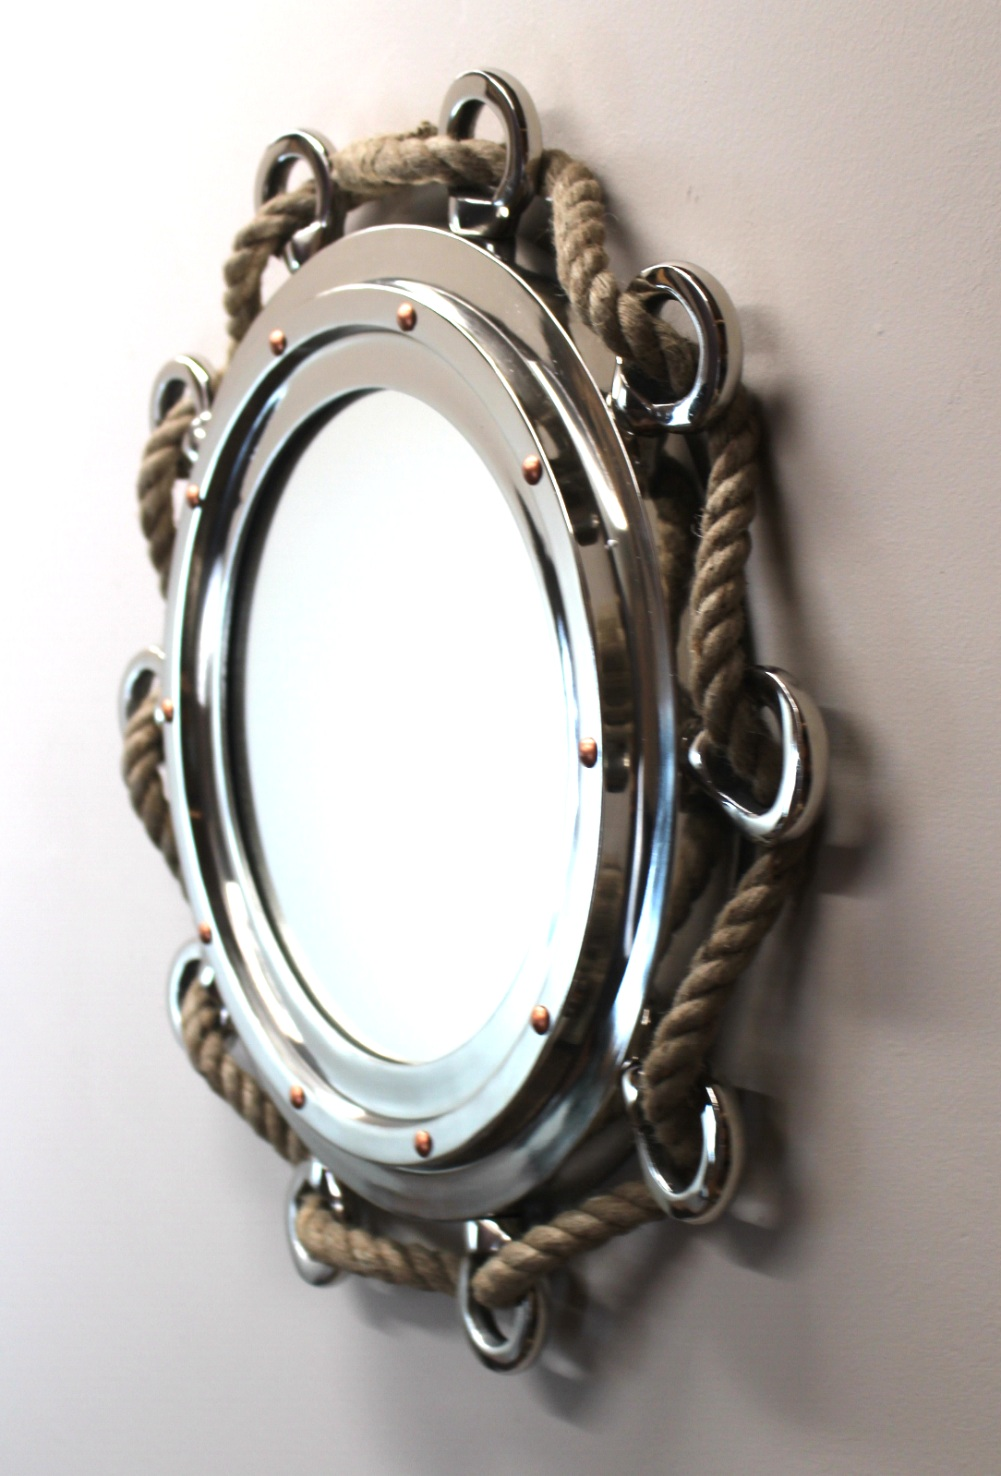 Silver Finish Porthole Mirror With Rope Nautical Ships Boat Decor The Kings Bay